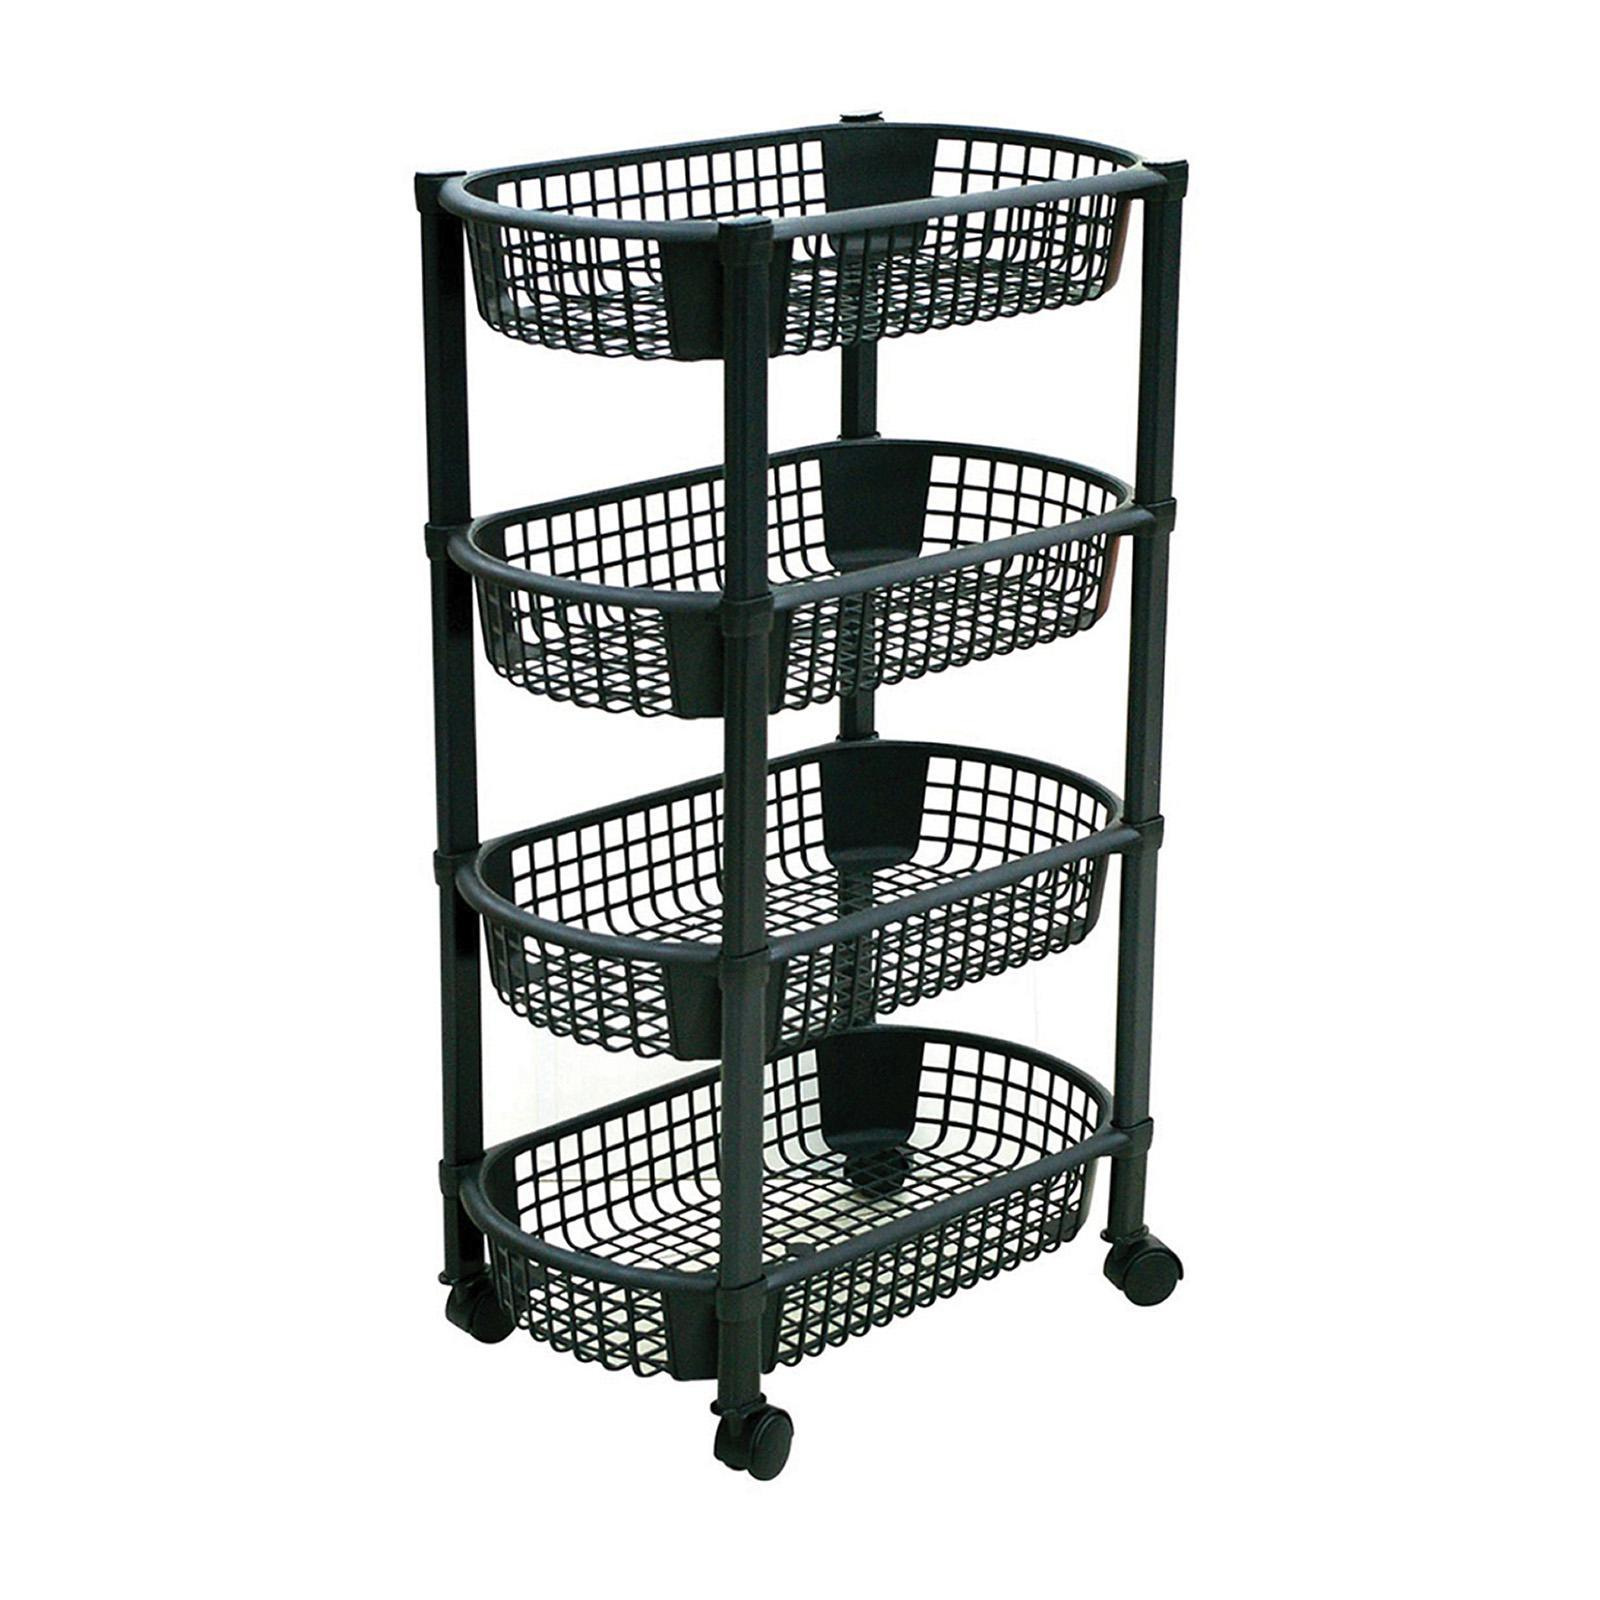 ALGO Space Wagon (Black) 4 Tier